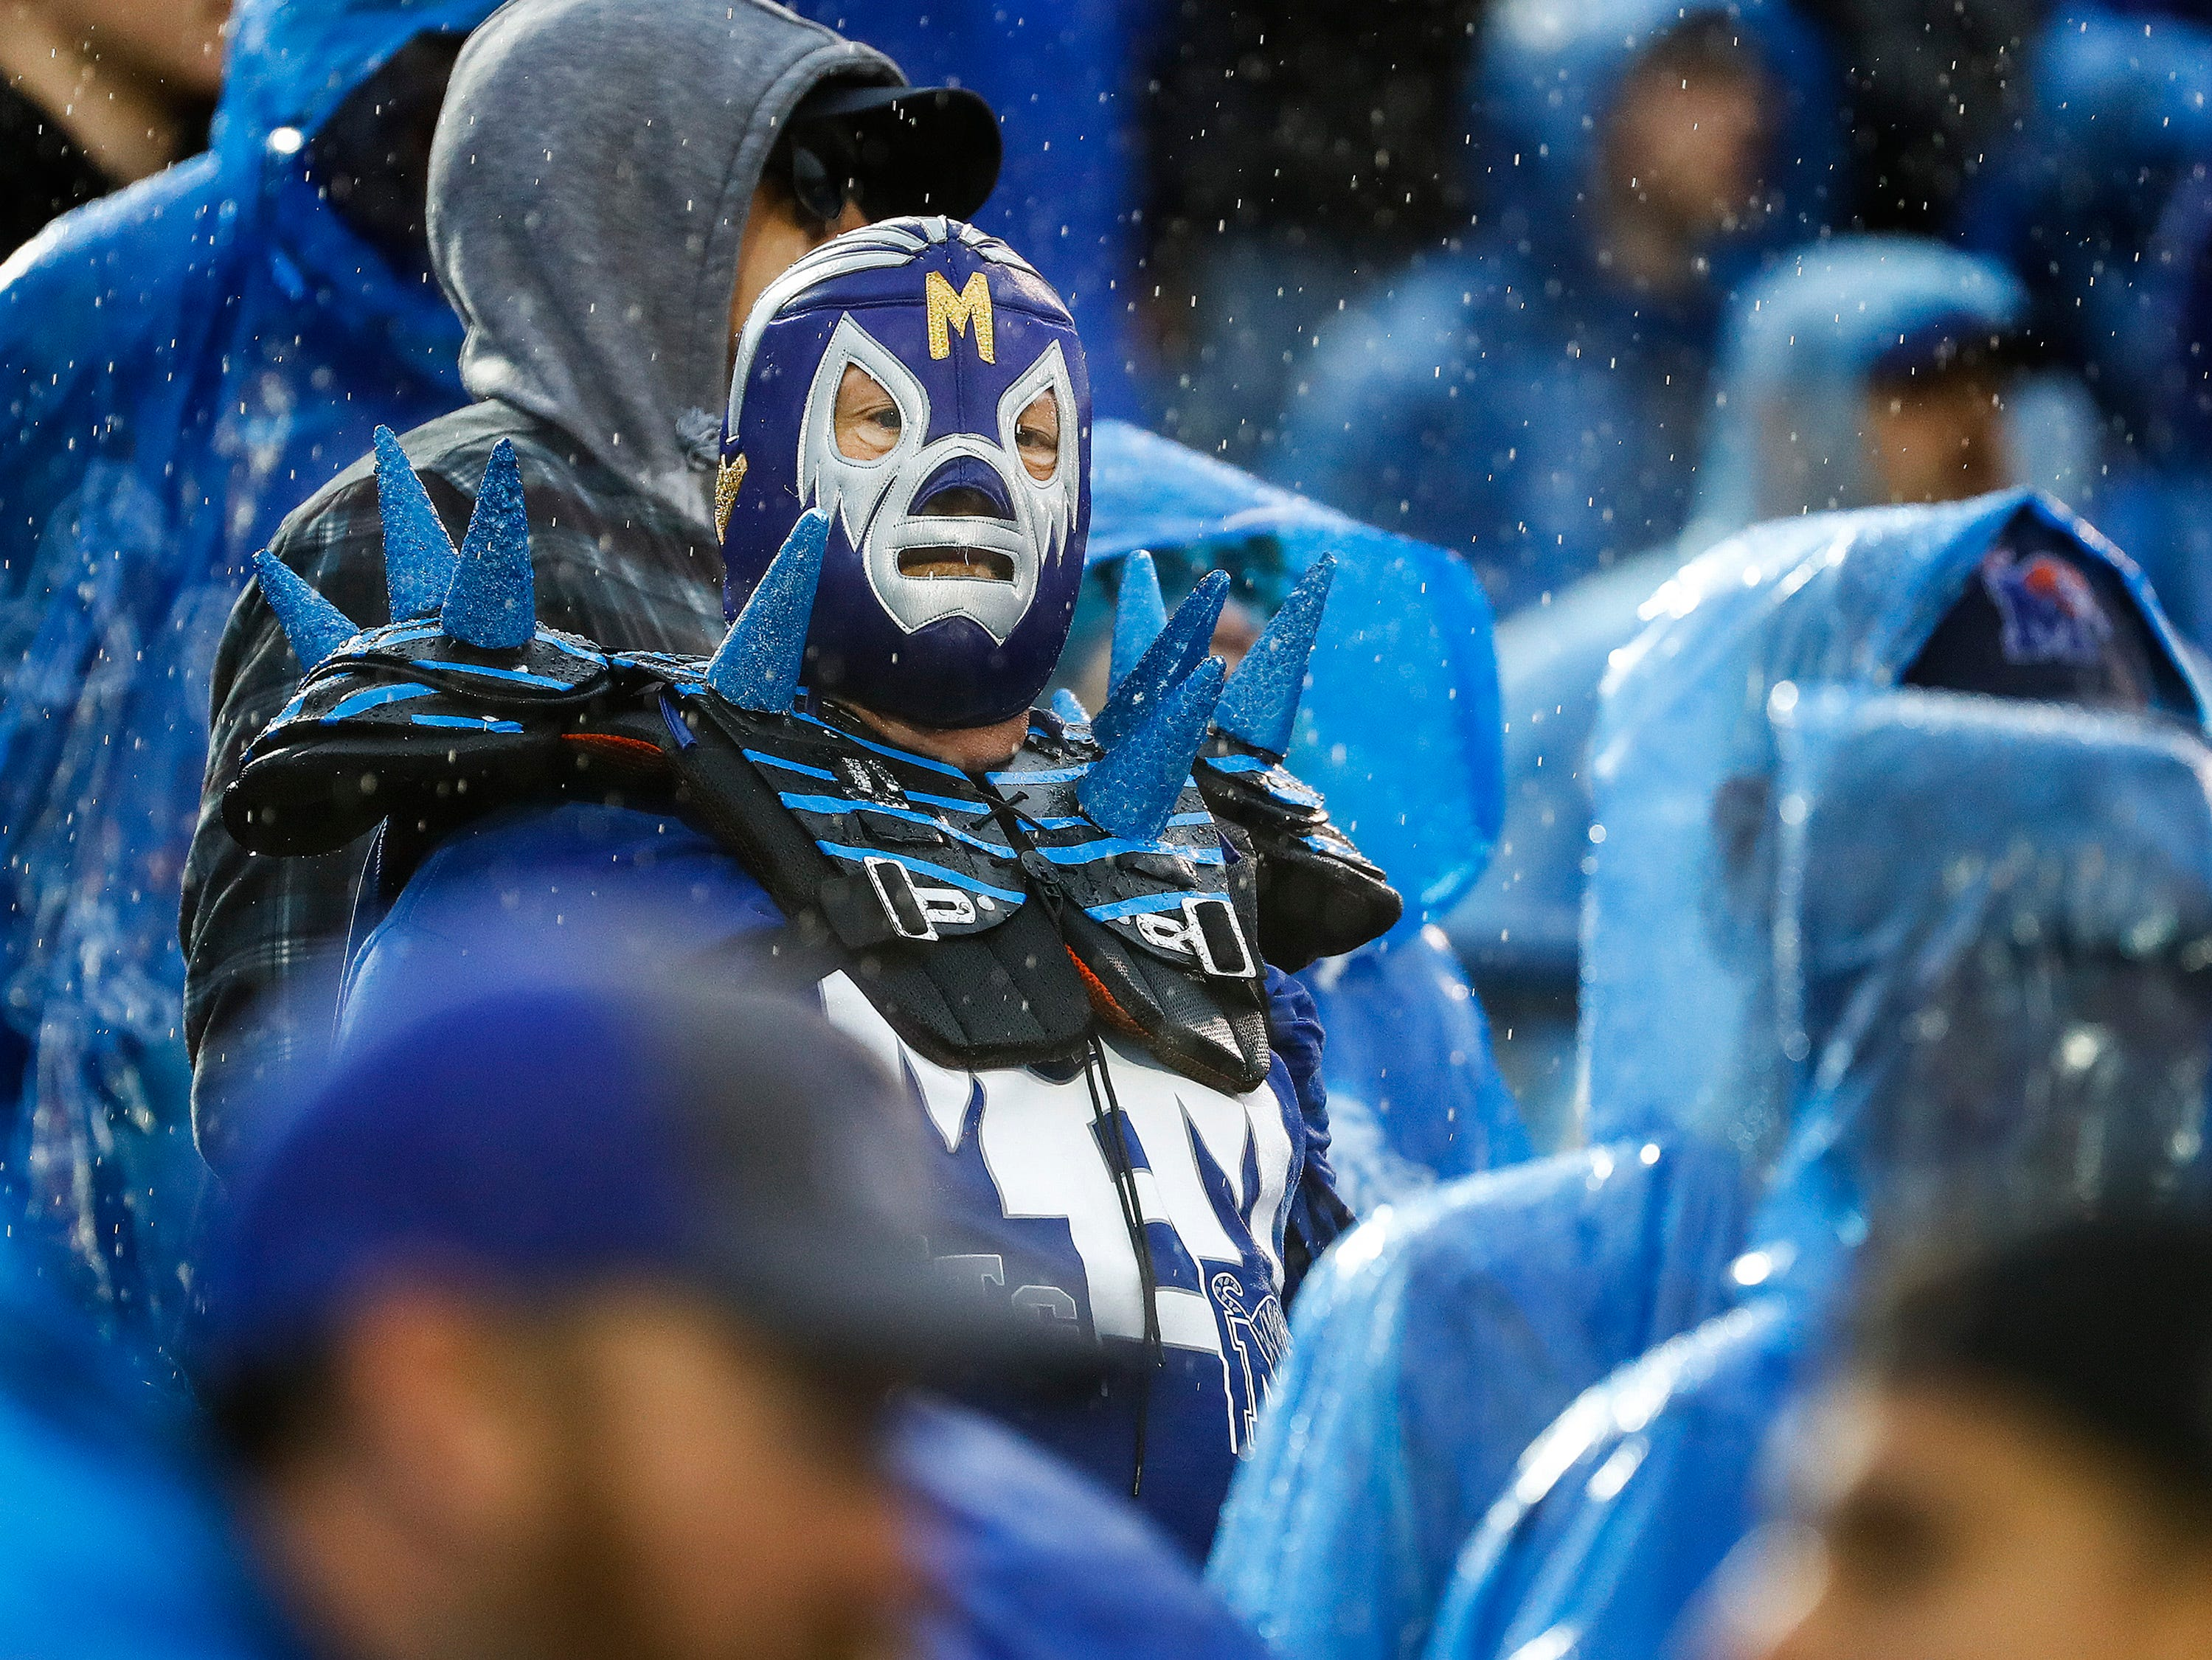 Memphis fans watch as the Tigers fall to Central Florida in a heartbreaking 31-30 loss in Memphis, Tenn., Saturday, October 13, 2018.